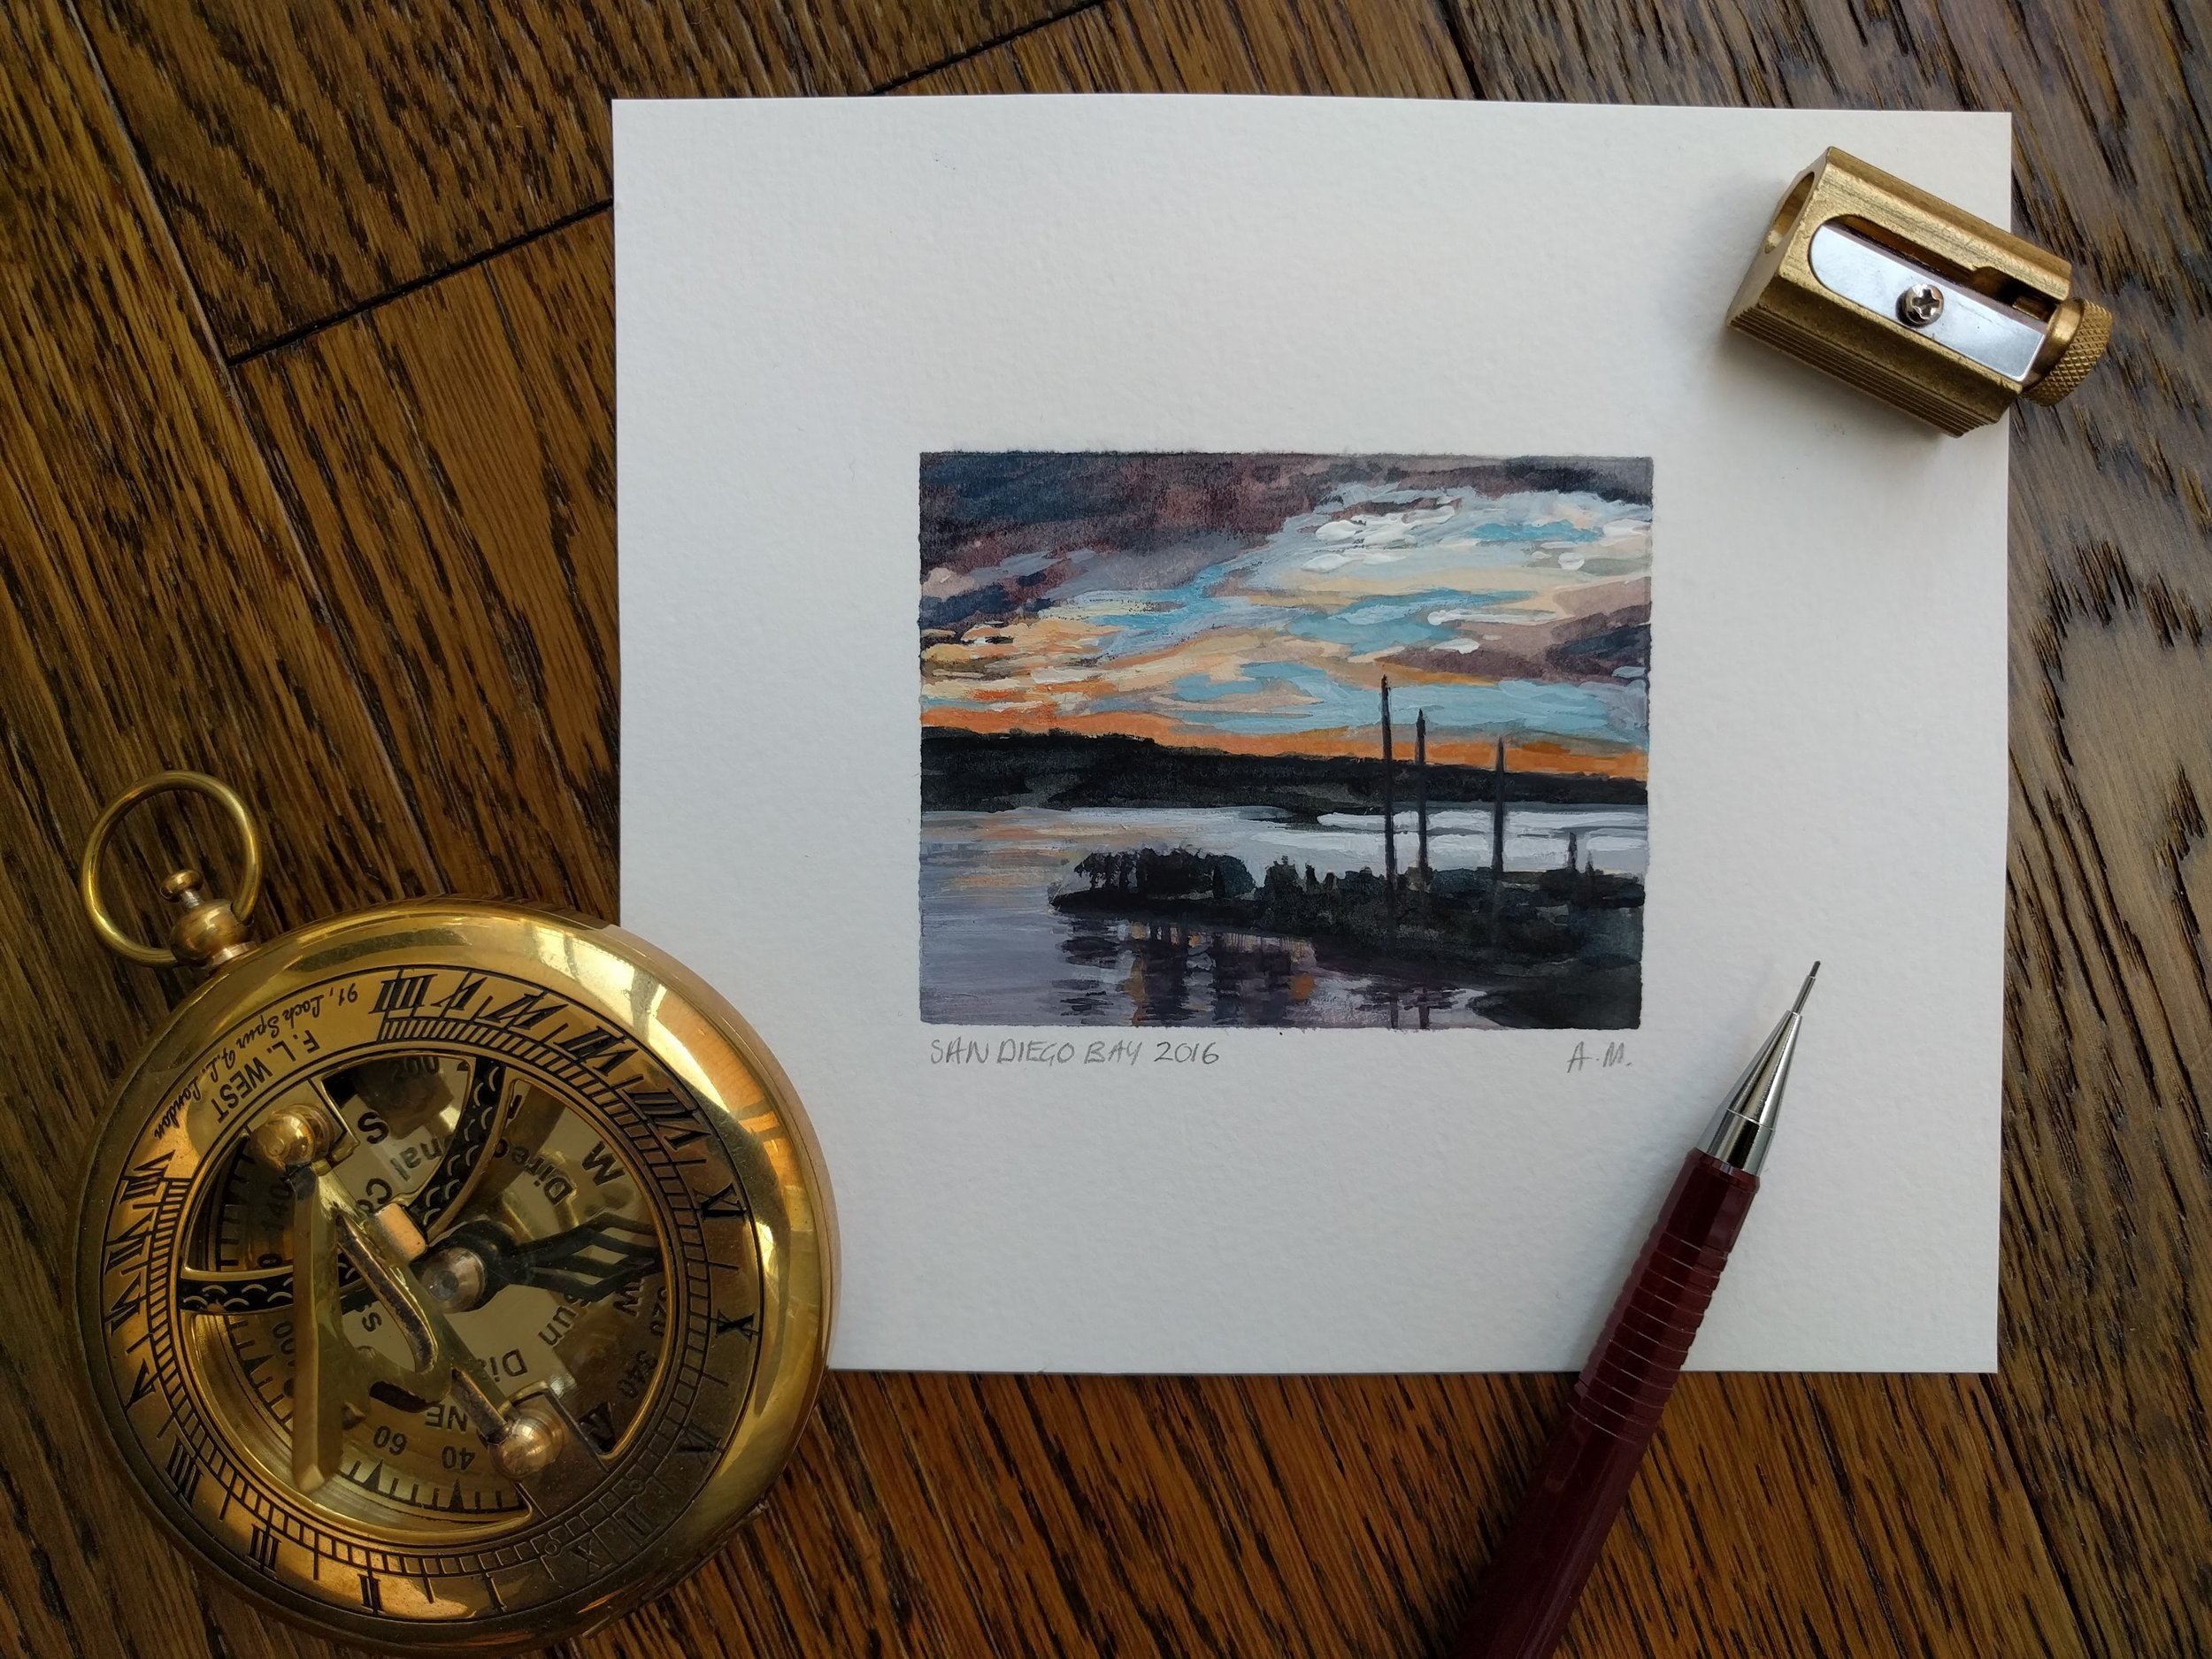 My Small Paintings miniature watercolour tiny art of sunset over yachts in harbour San Diego Bay - sketchbook view